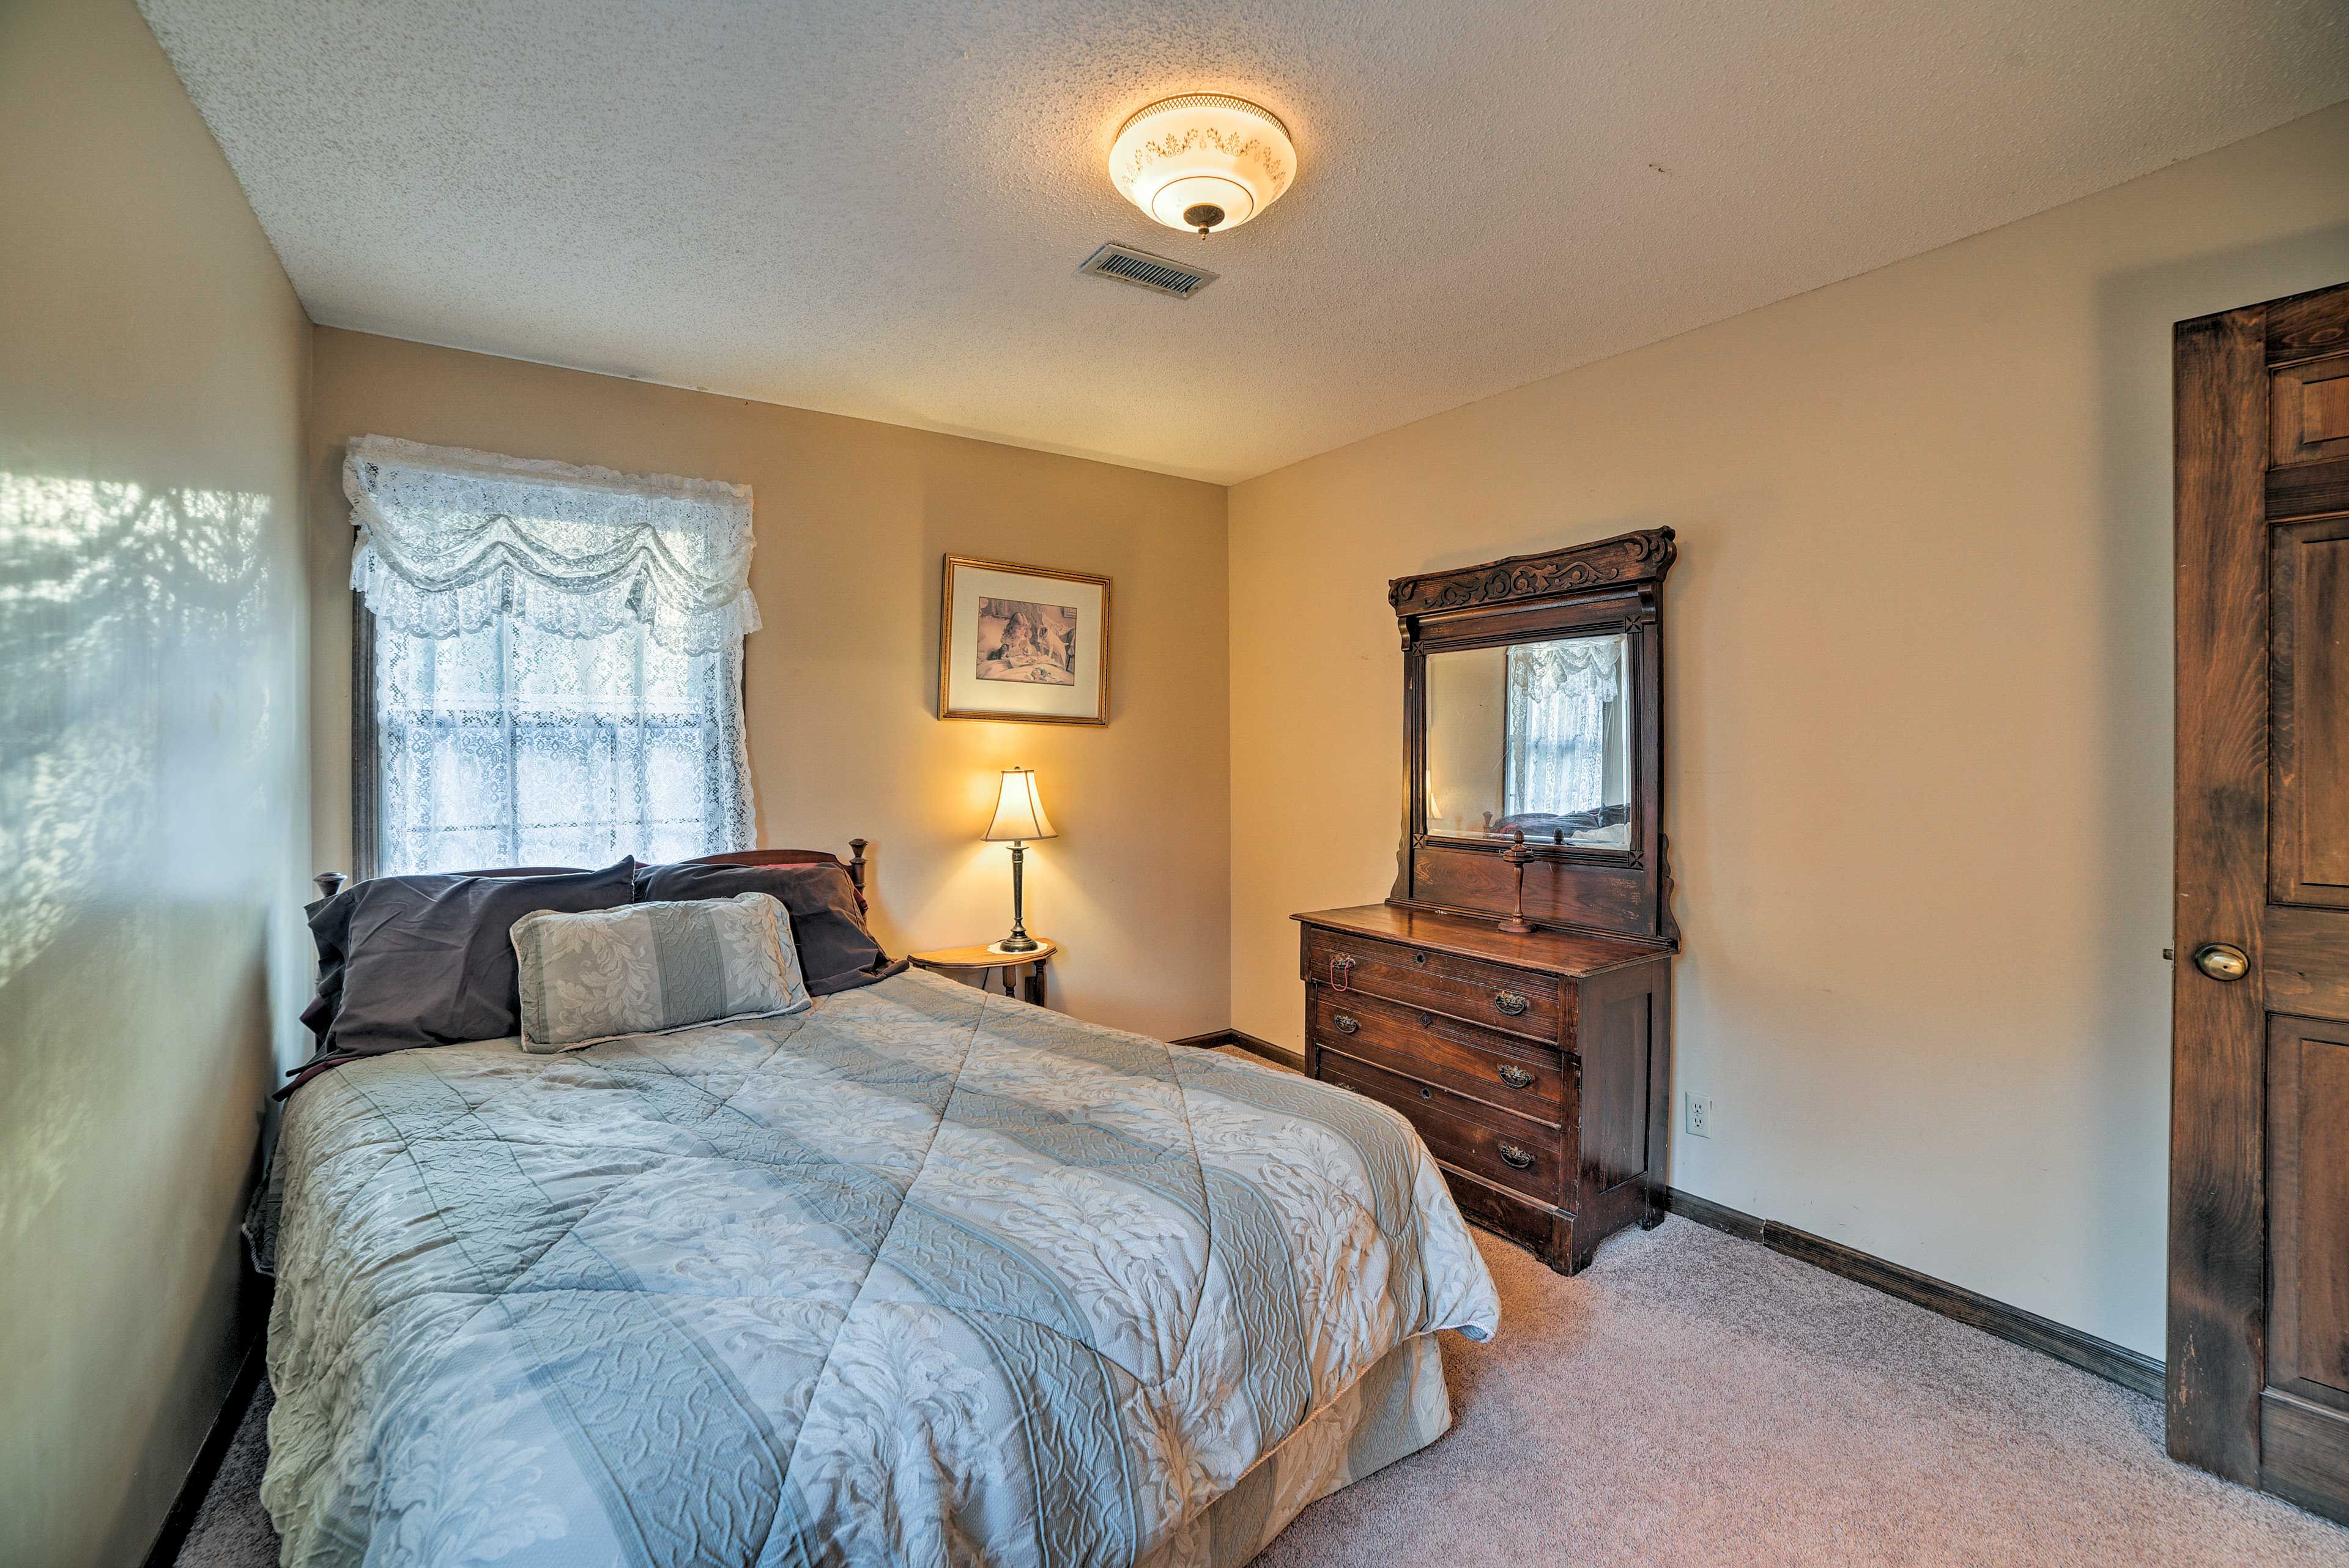 The fourth and final bedroom has a comfortable full mattress.